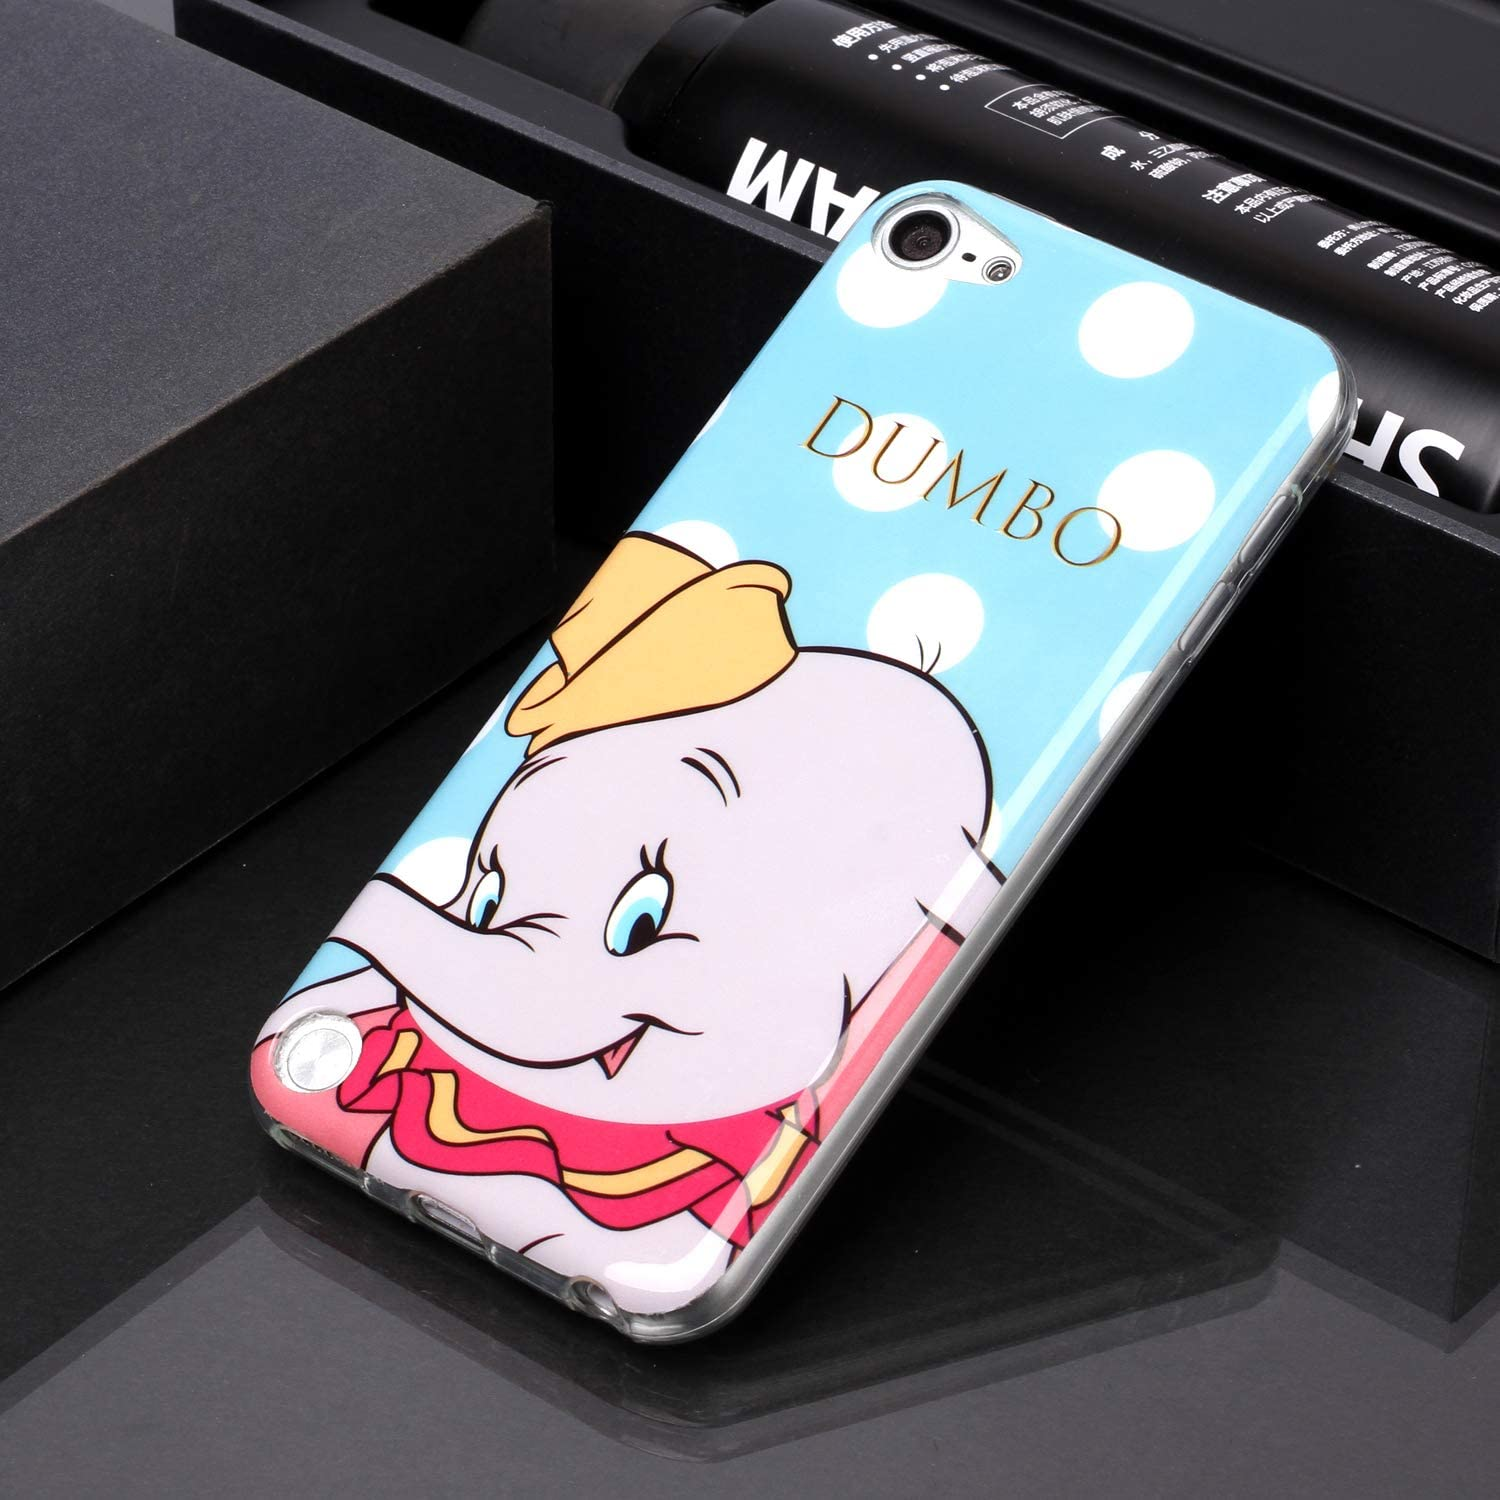 5th KANTAS Soft Silicone Case for iPod Touch 5//6//7 Back Cover Flexible TPU Bumper Lovely Elephant Pattern Rubber Gel Skin Backcase Ultra Slim Thin Fit Protective Cases for iPod Touch 7th 6th